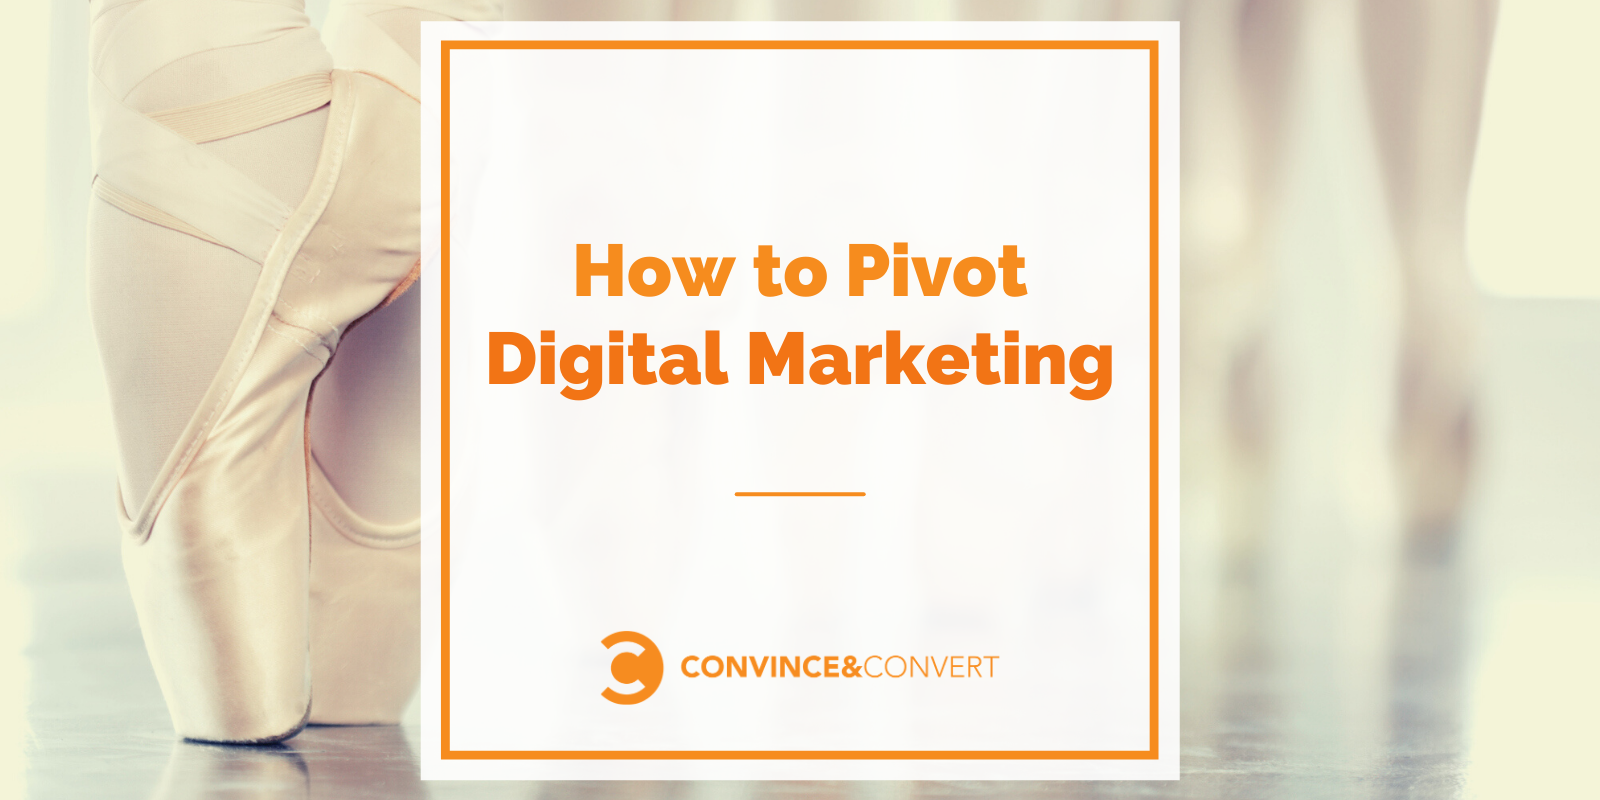 How-to-Pivot-Digital-Marketing.png